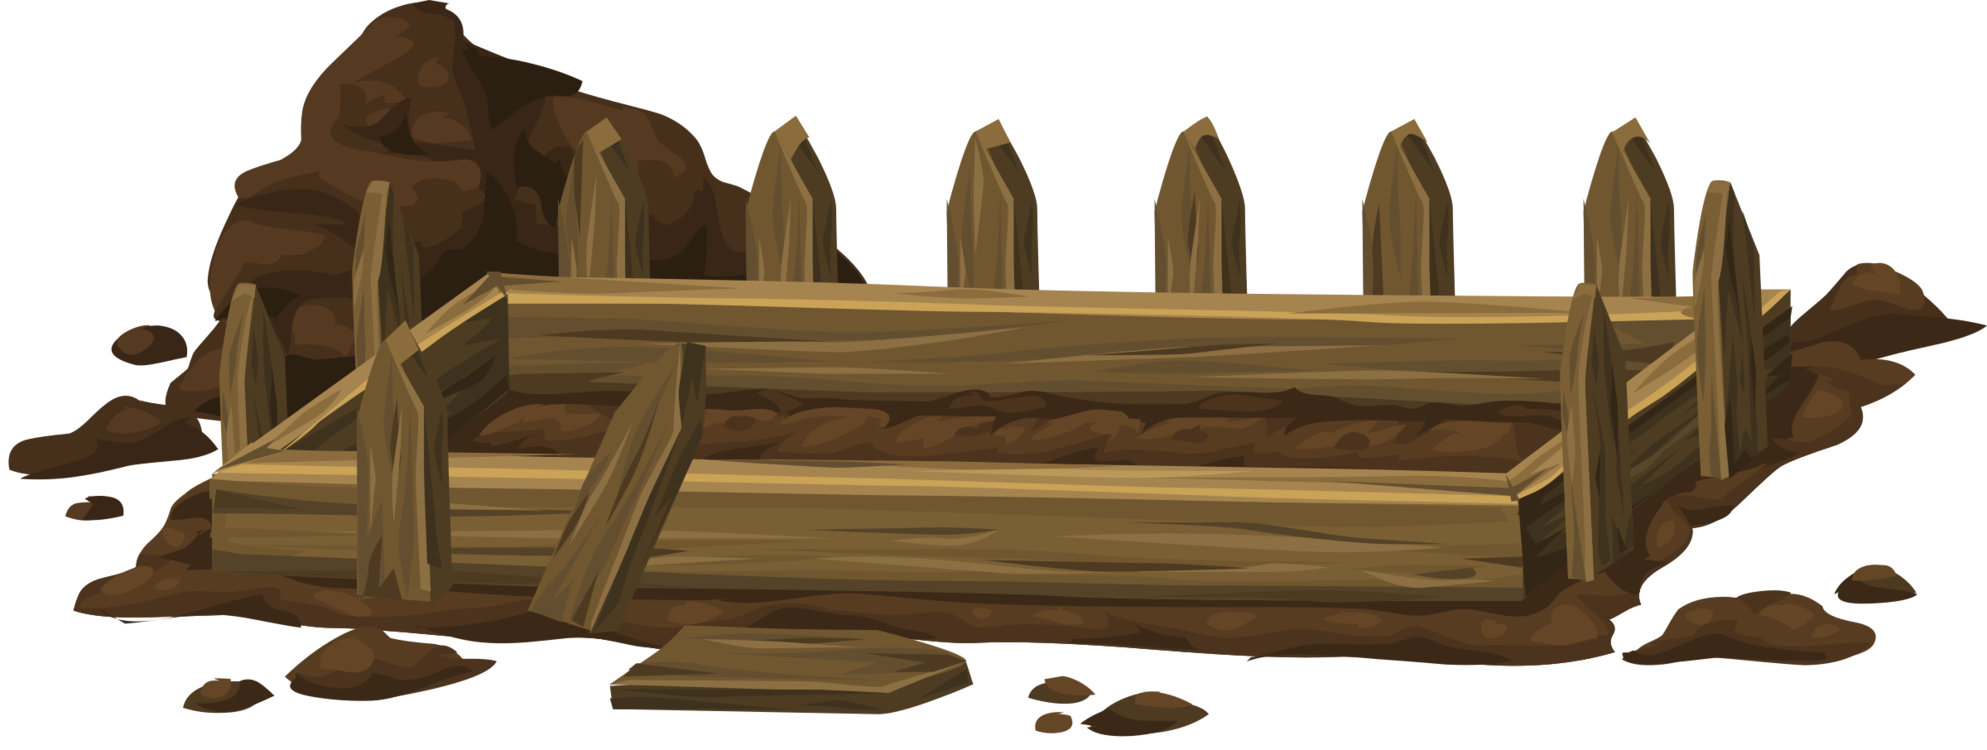 Wood,Furniture,Chassis PNG Clipart.